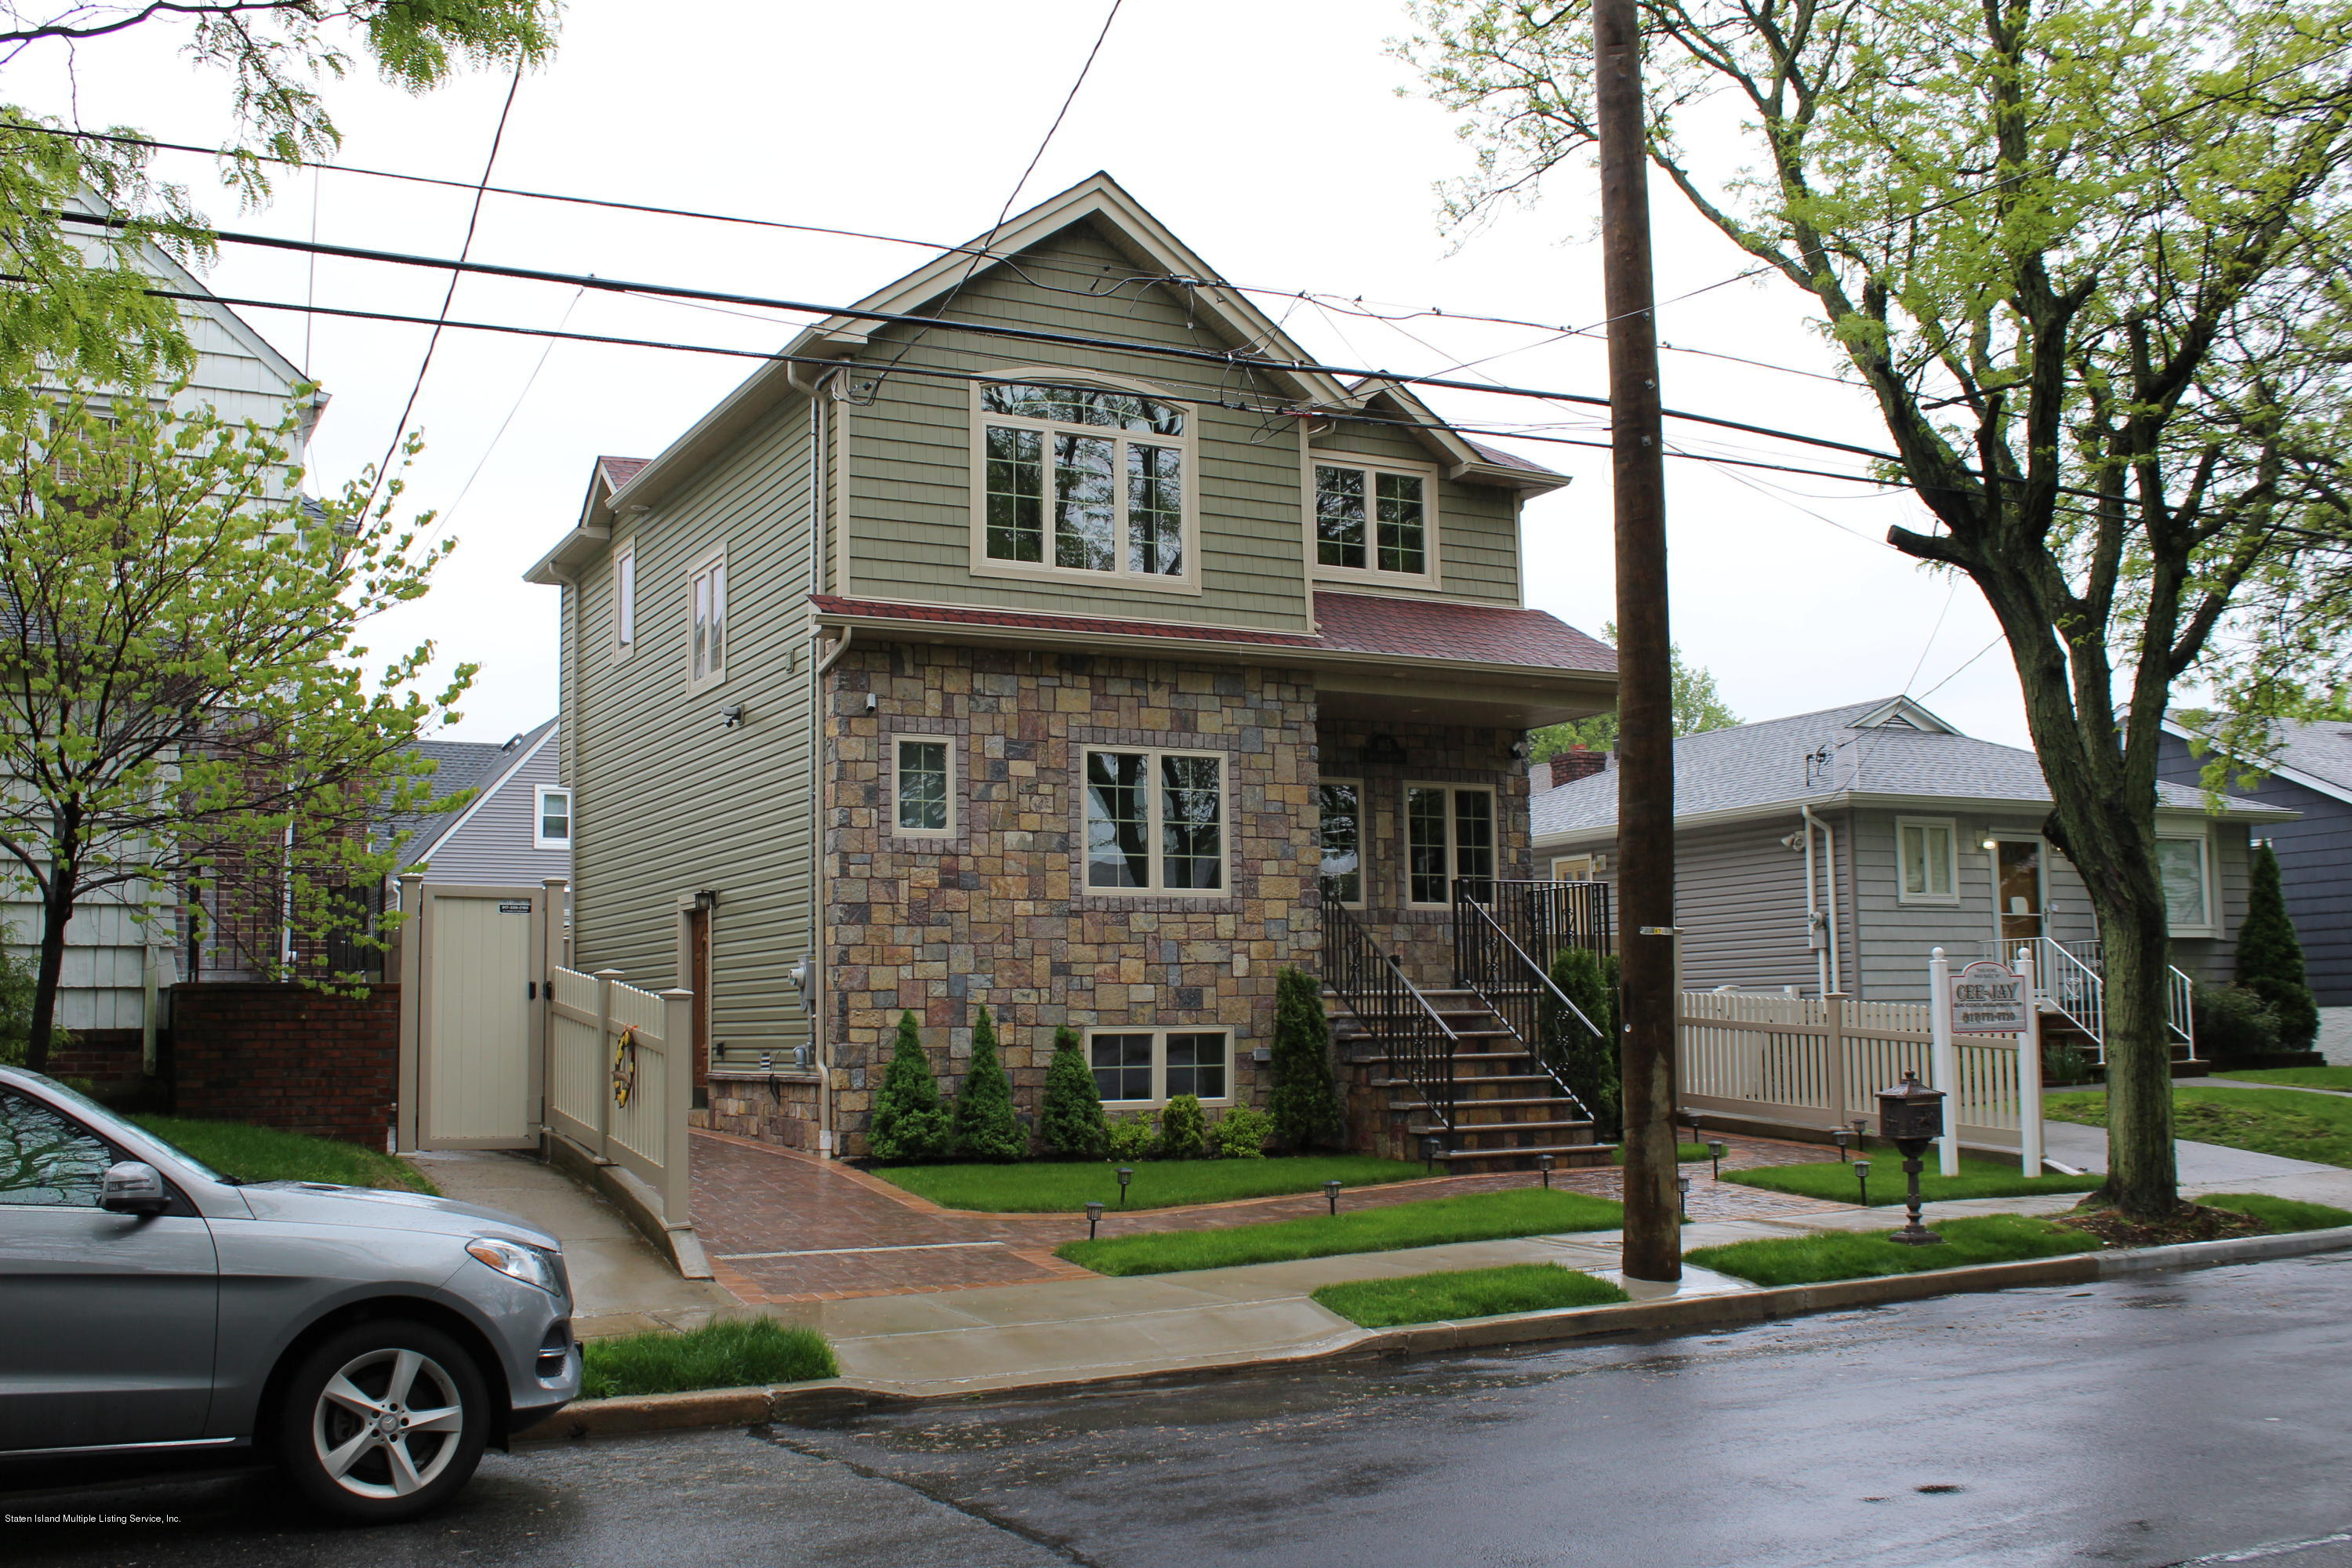 Single Family - Detached 165 Woolley Avenue  Staten Island, NY 10314, MLS-1128875-3